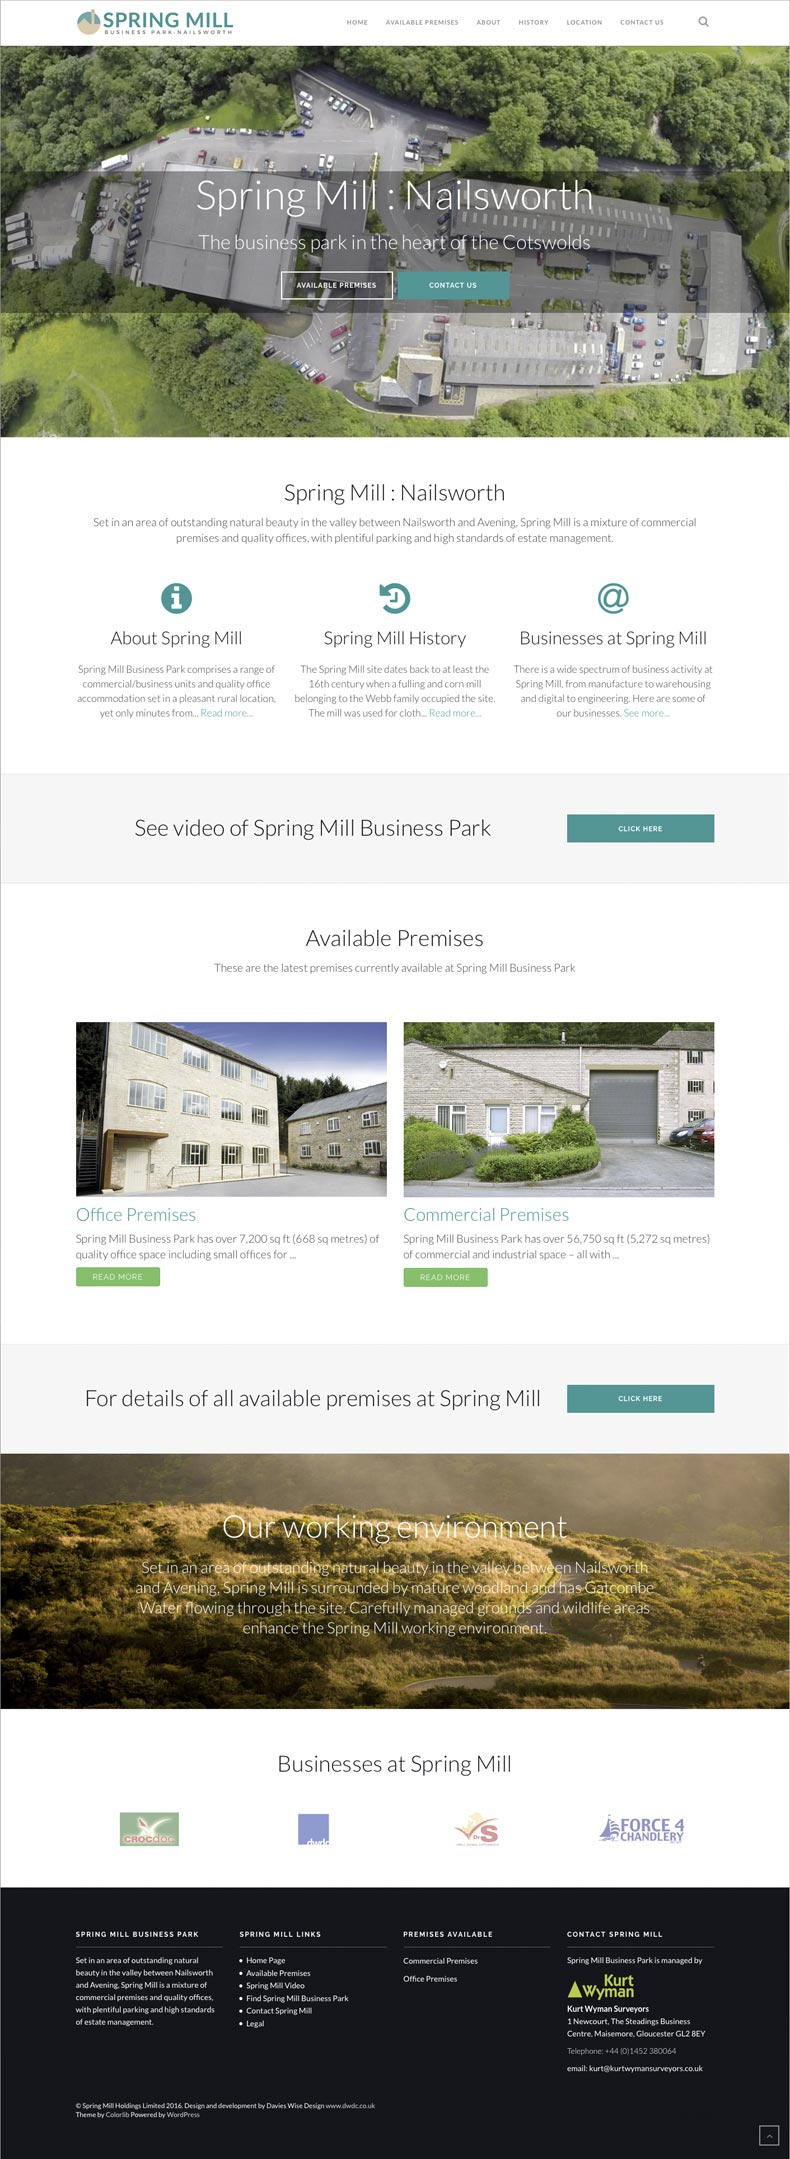 Spring Mill web site home page